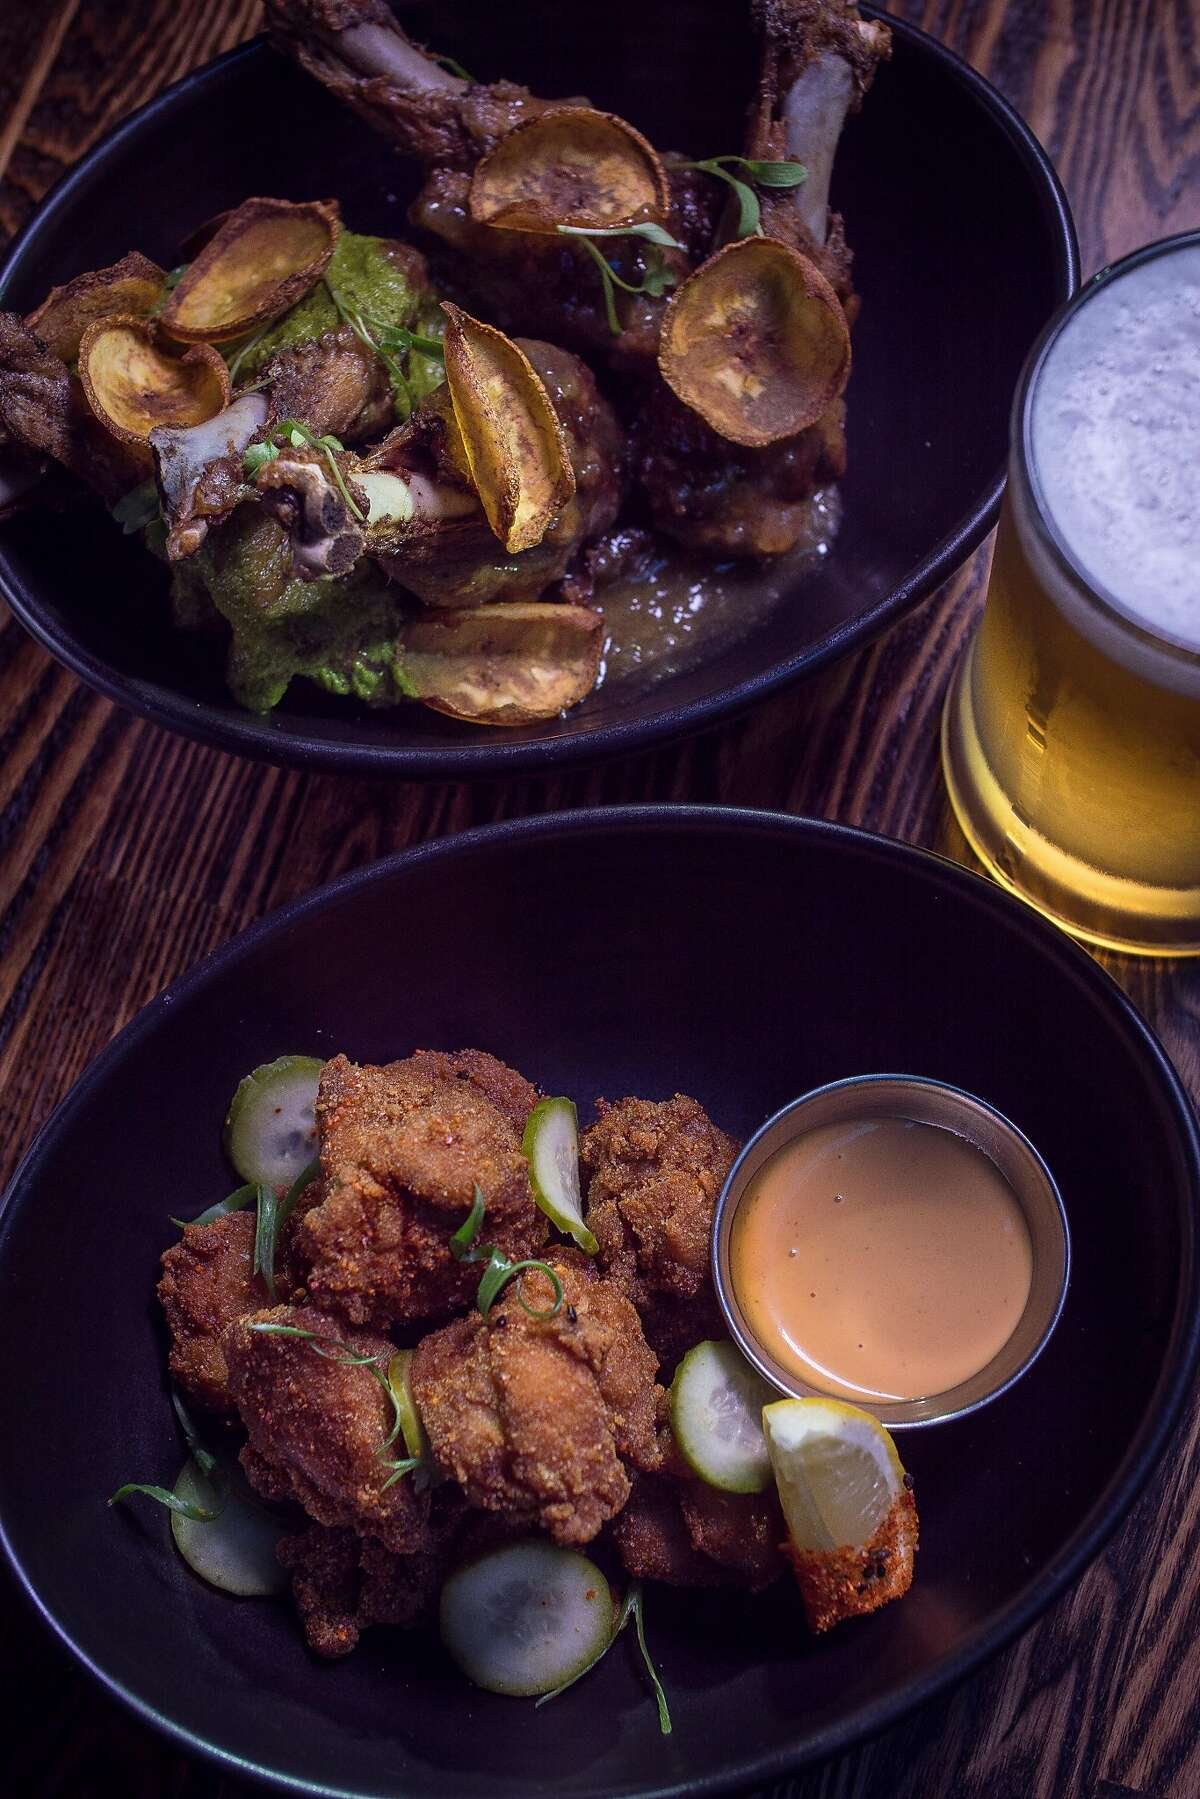 The Chicken Karaage, bottom, and the Duck Wings at International Smoke in San Francisco, Calif.ares seen on January 6th, 2018.